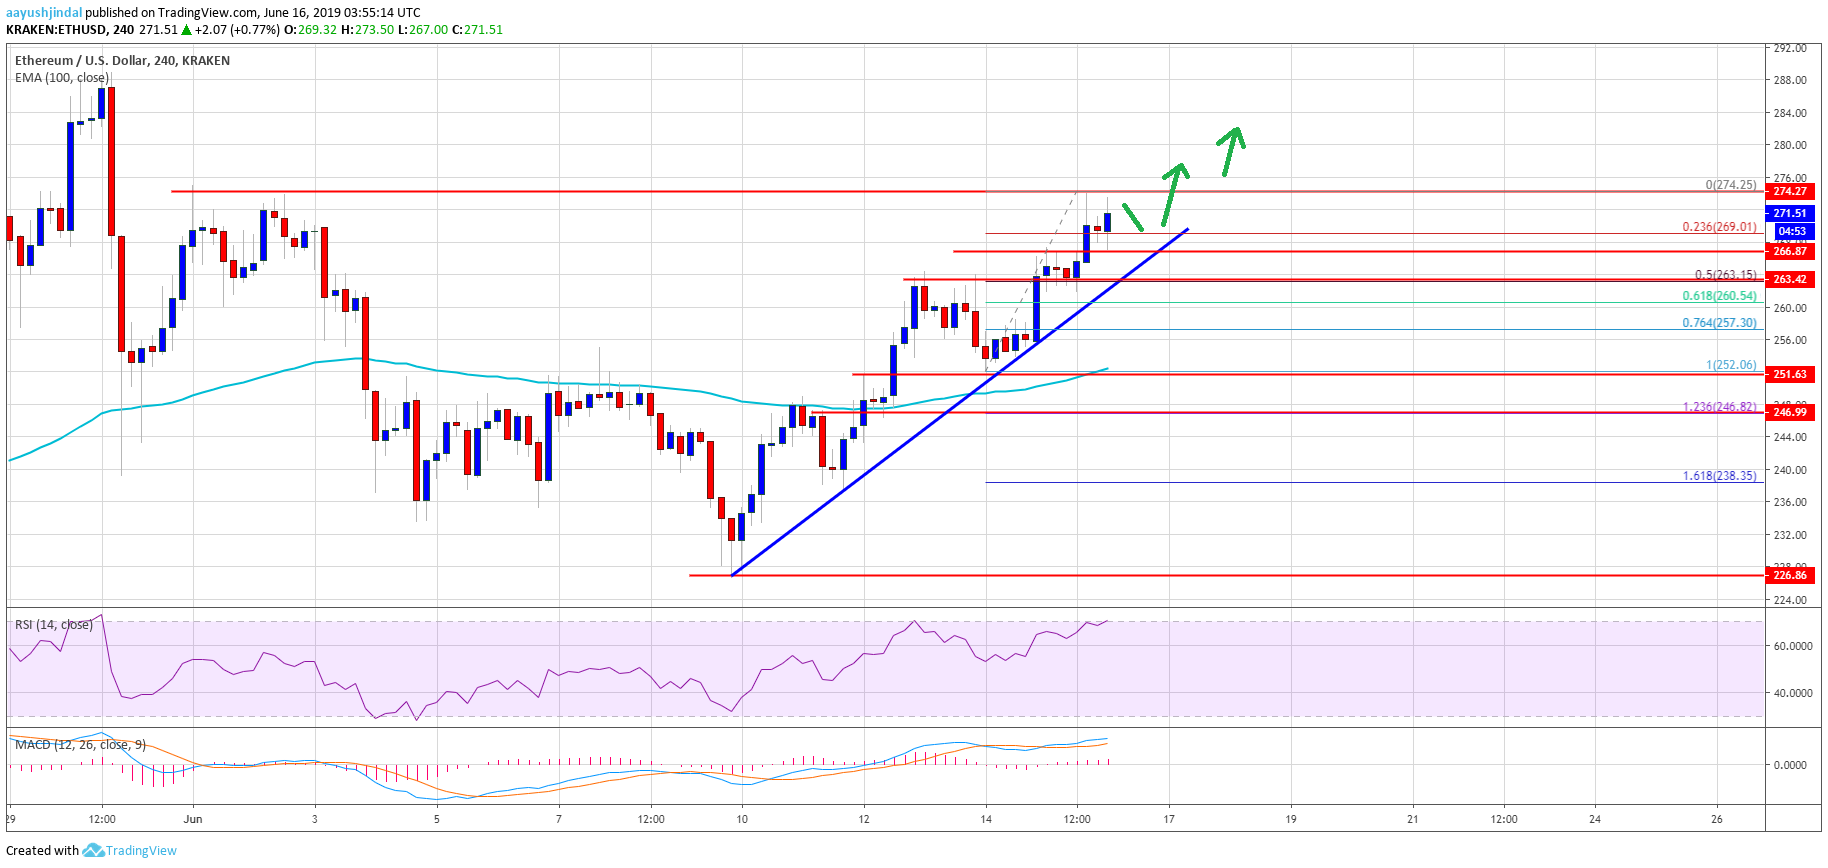 Ethereum (ETH) Price Weekly Forecast: Break Above $300 Likely